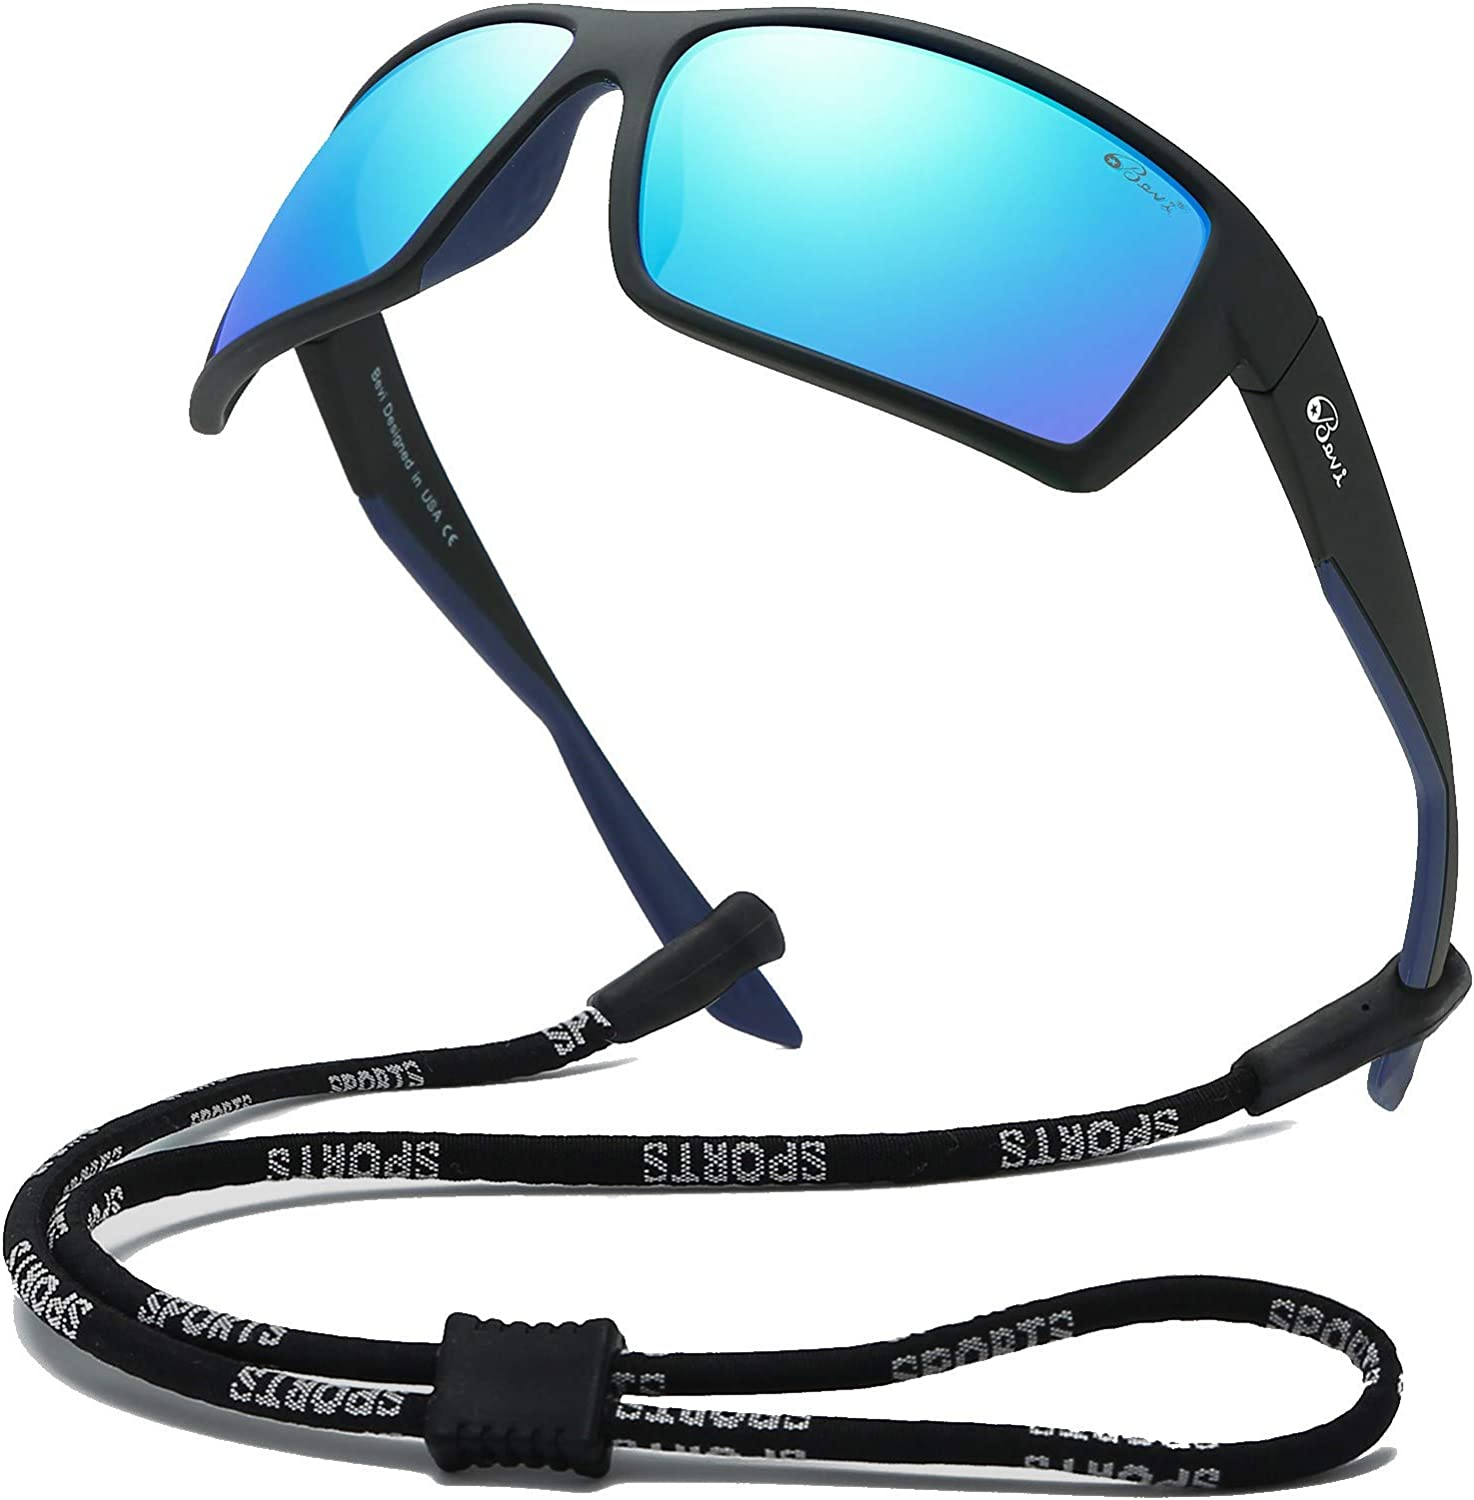 Goonk Polarized Sports Sunglasses Lightest Comfortable for Running Driving Baseball Cycling Men Women Teens Youth